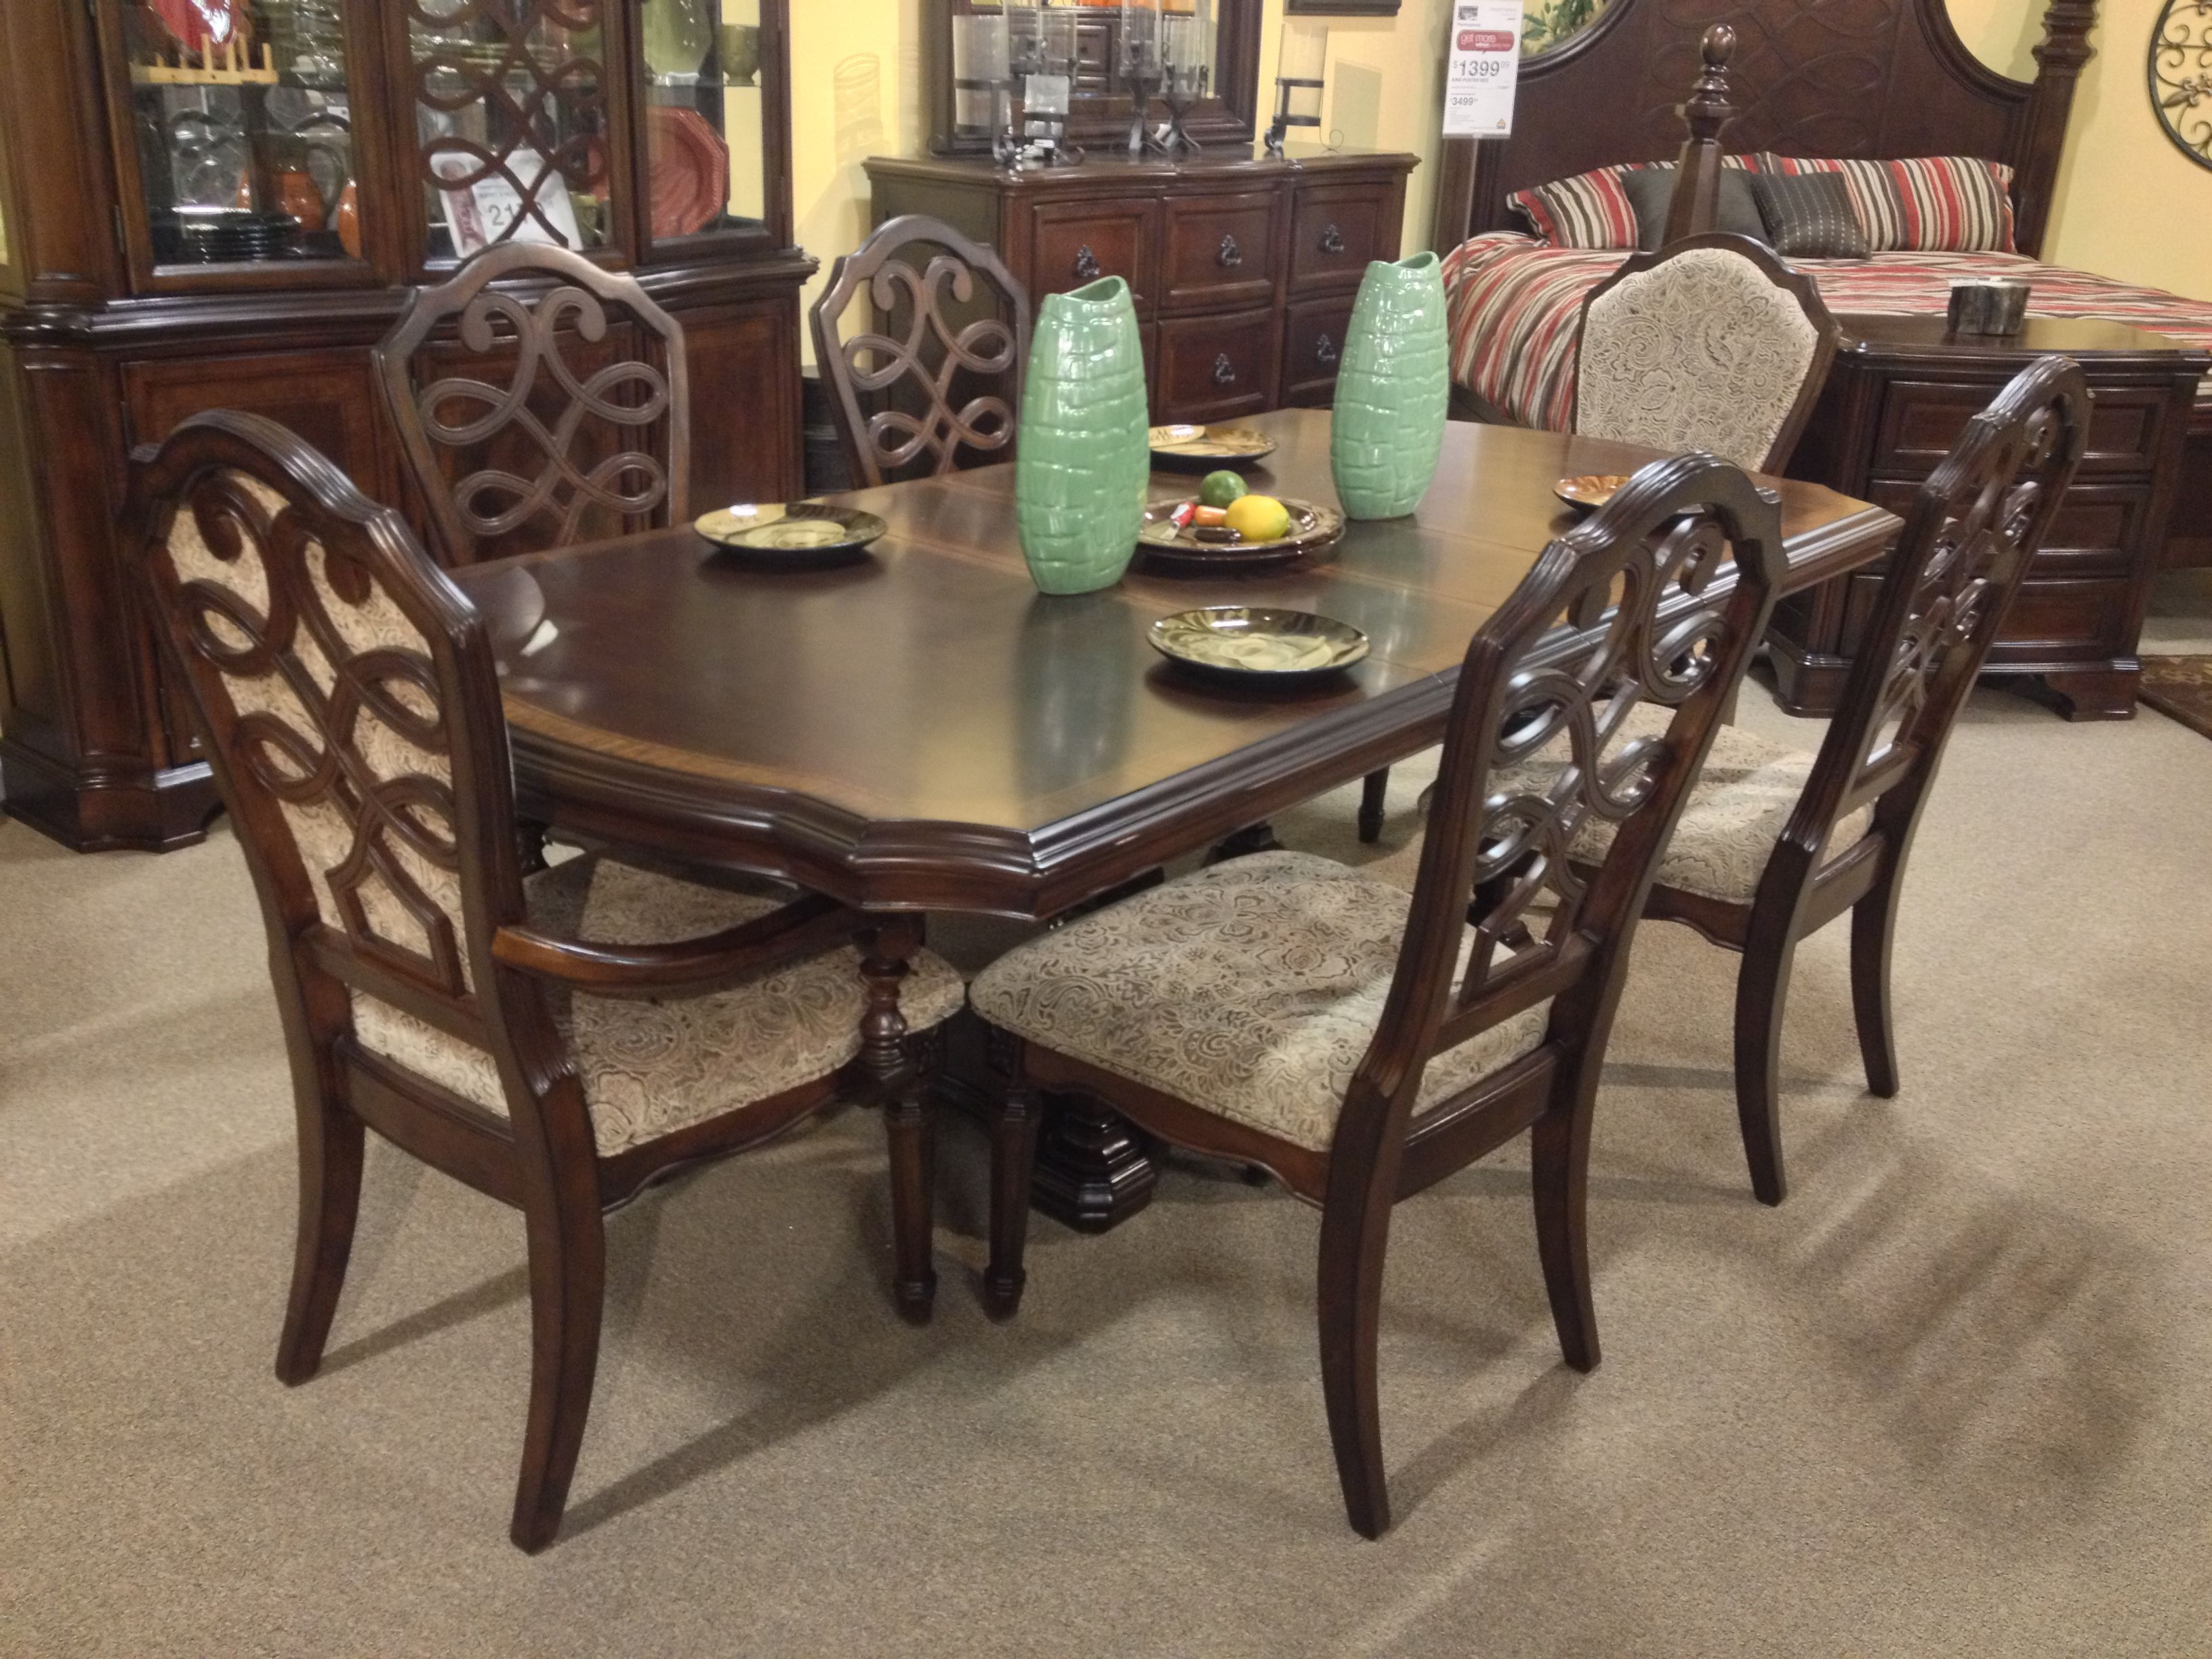 Genial Flemingsburg 7 Piece #Dining Room Set Ashley #Furniture In #TriCities